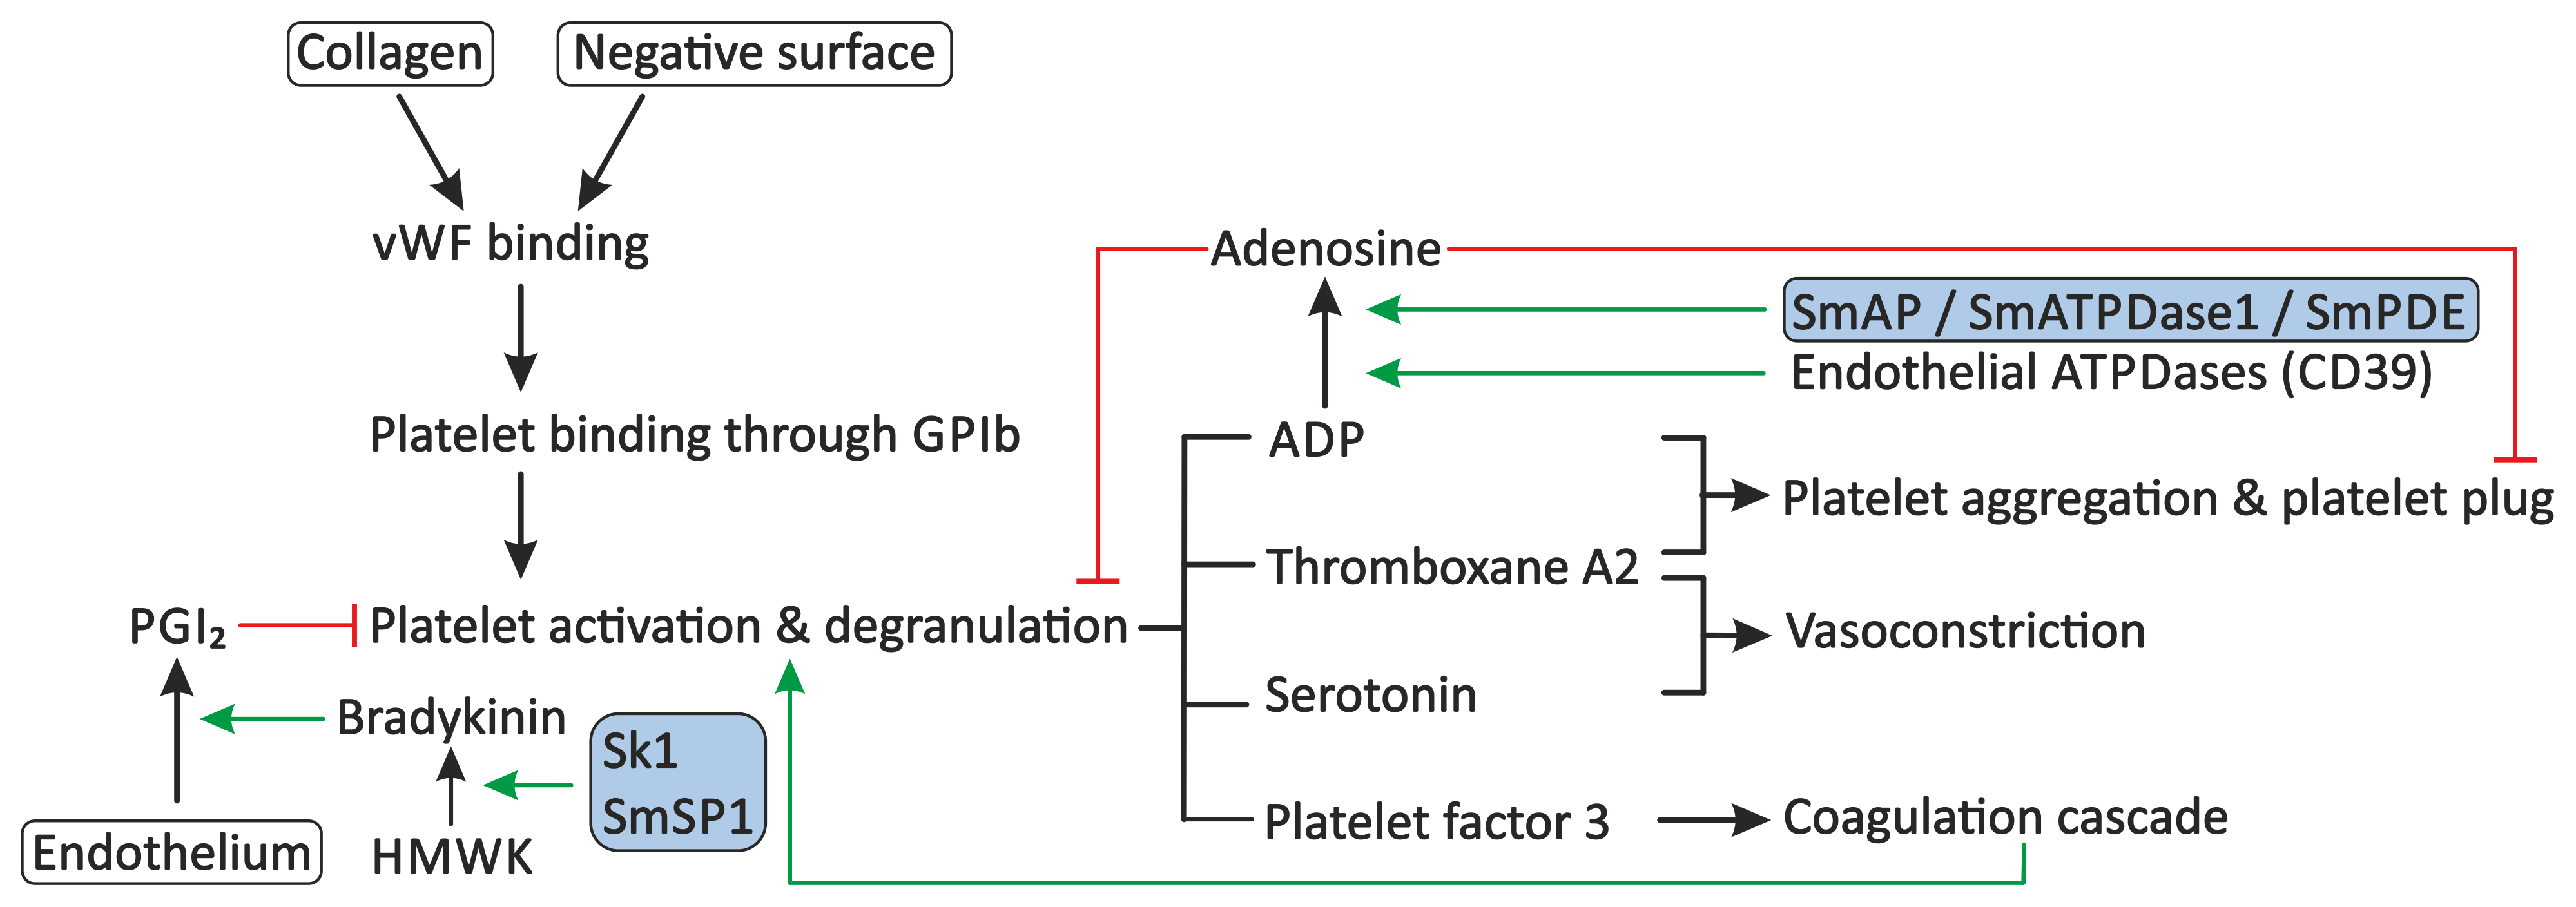 Proposed modulation of primary haemostasis by schistosomes.